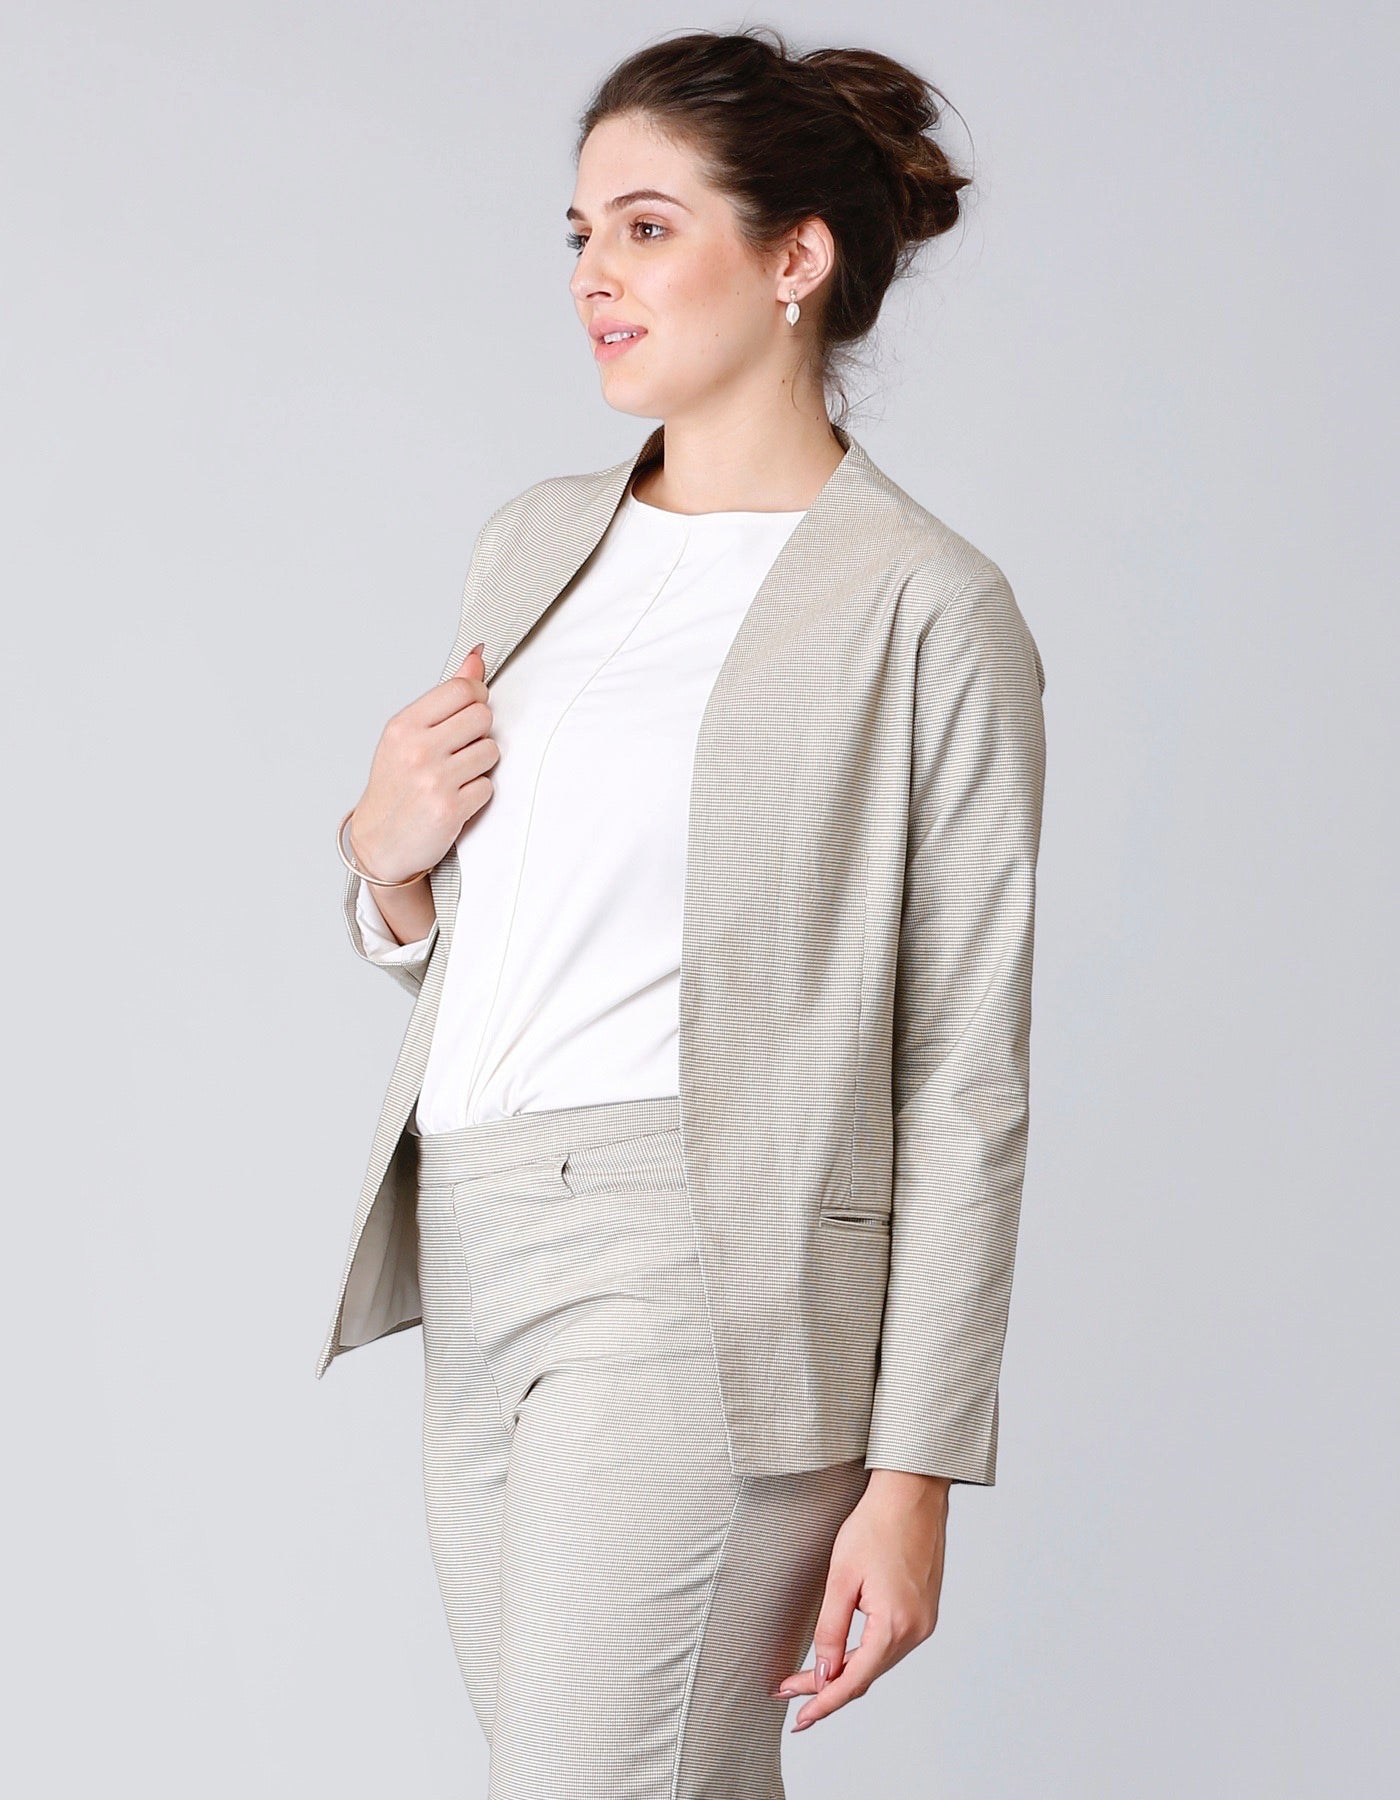 Houndstooth Formal Jacket - Beige